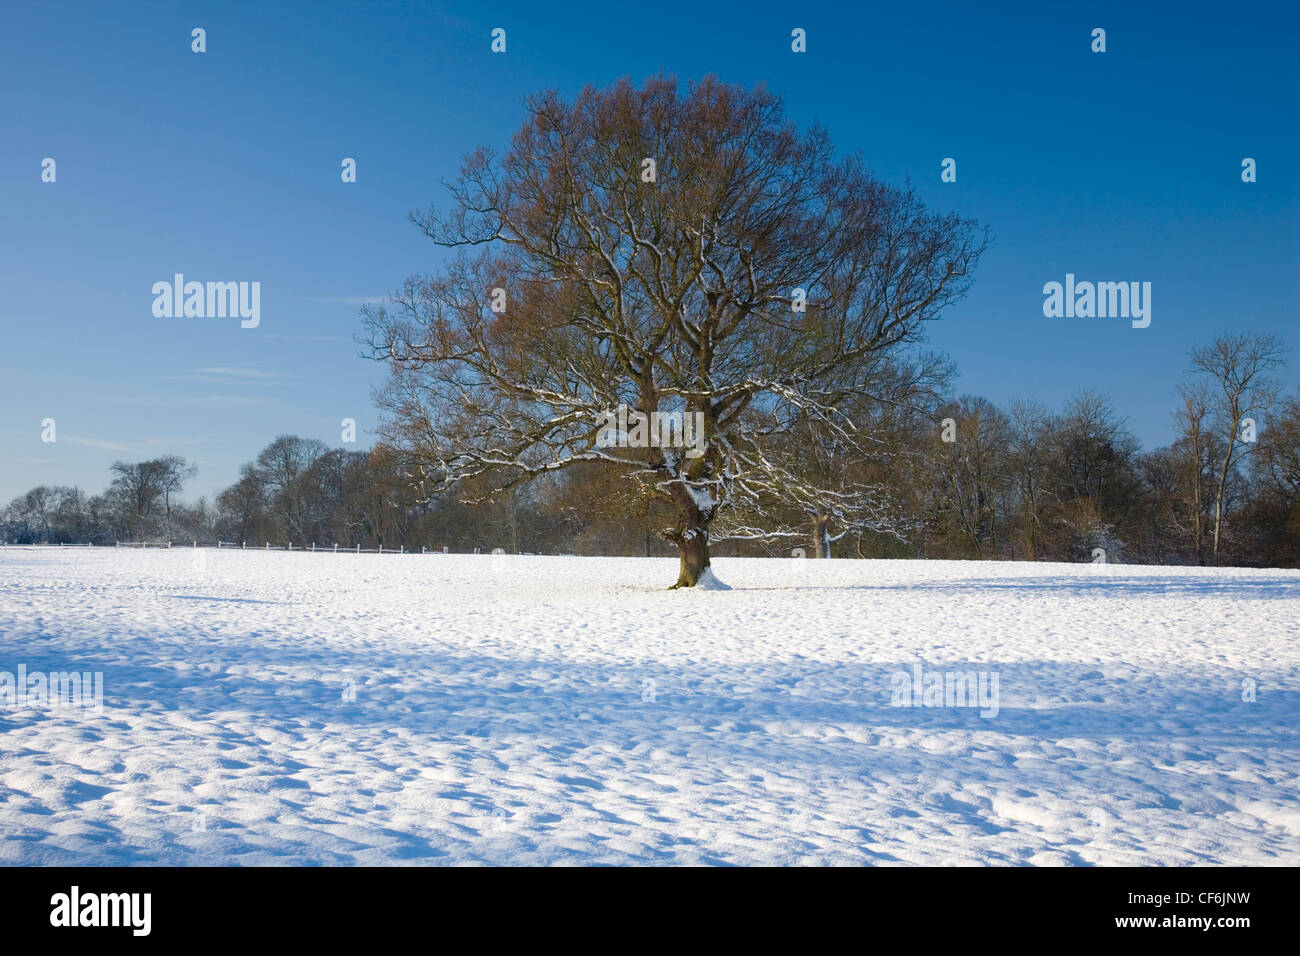 Dormansland, Surrey, England. Oak tree (Quercus robur) in snow-covered field. - Stock Image